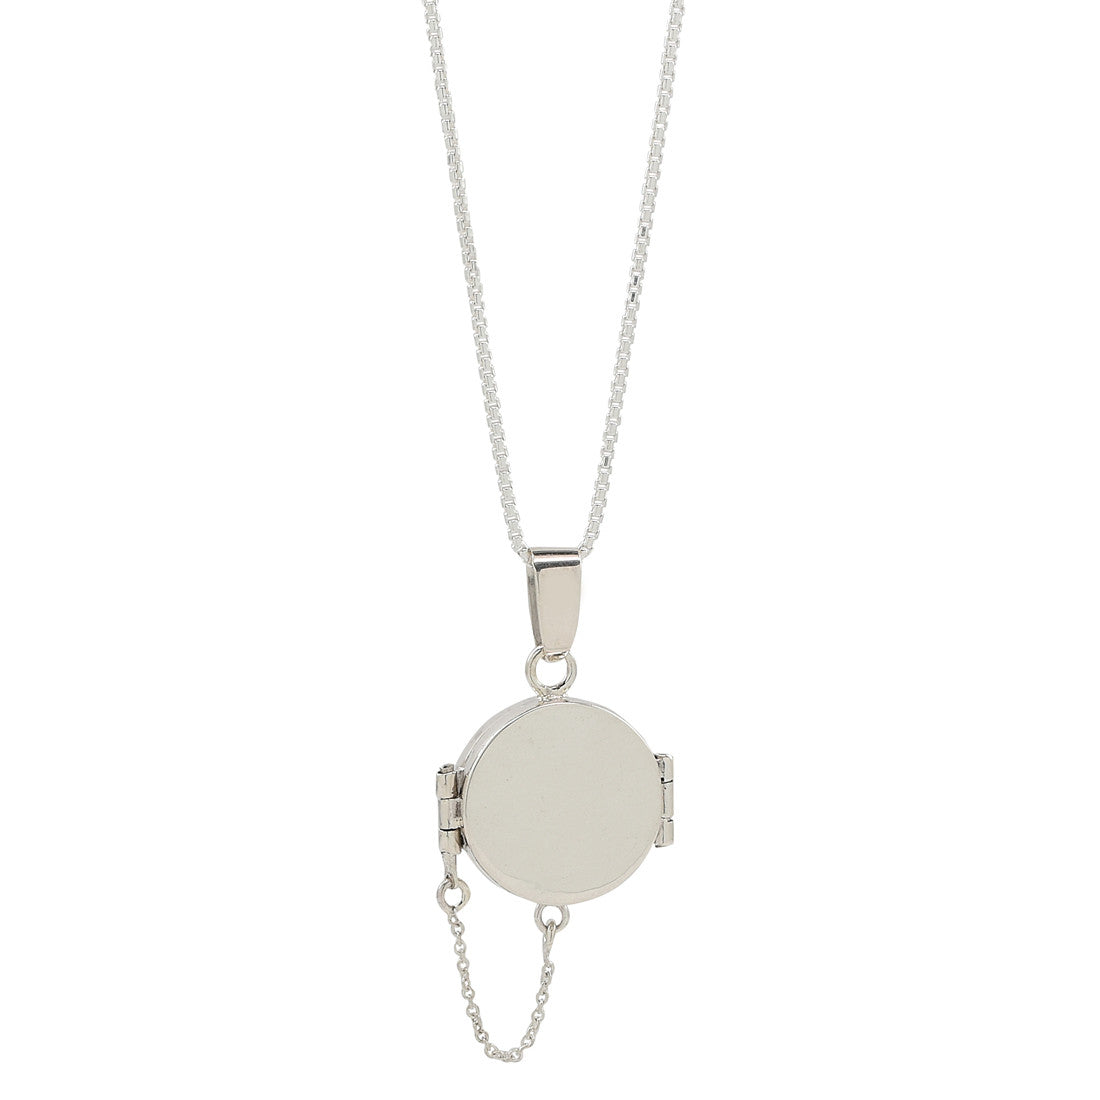 Round locket necklace - René Habie